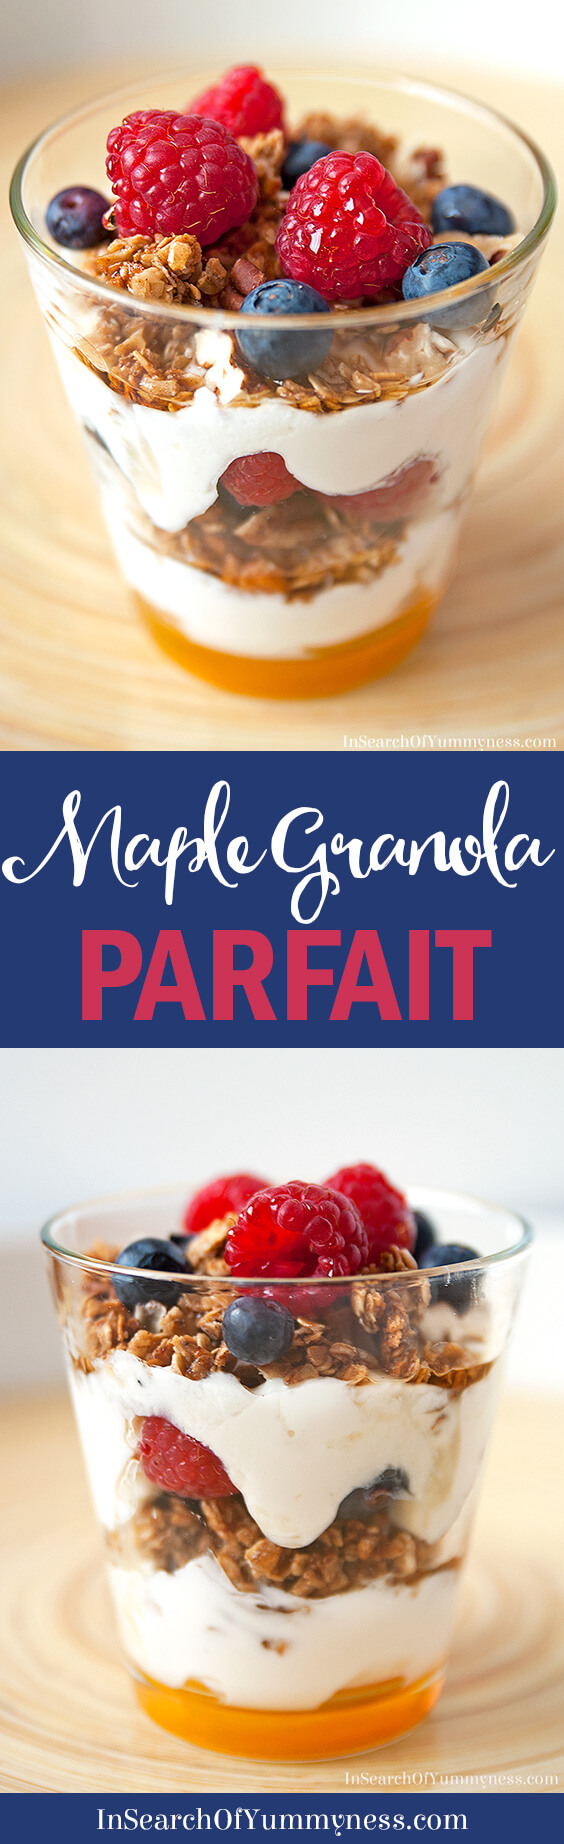 Maple granola parfait recipe in search of yummy ness how about a maple granola parfait its easy to ccuart Choice Image